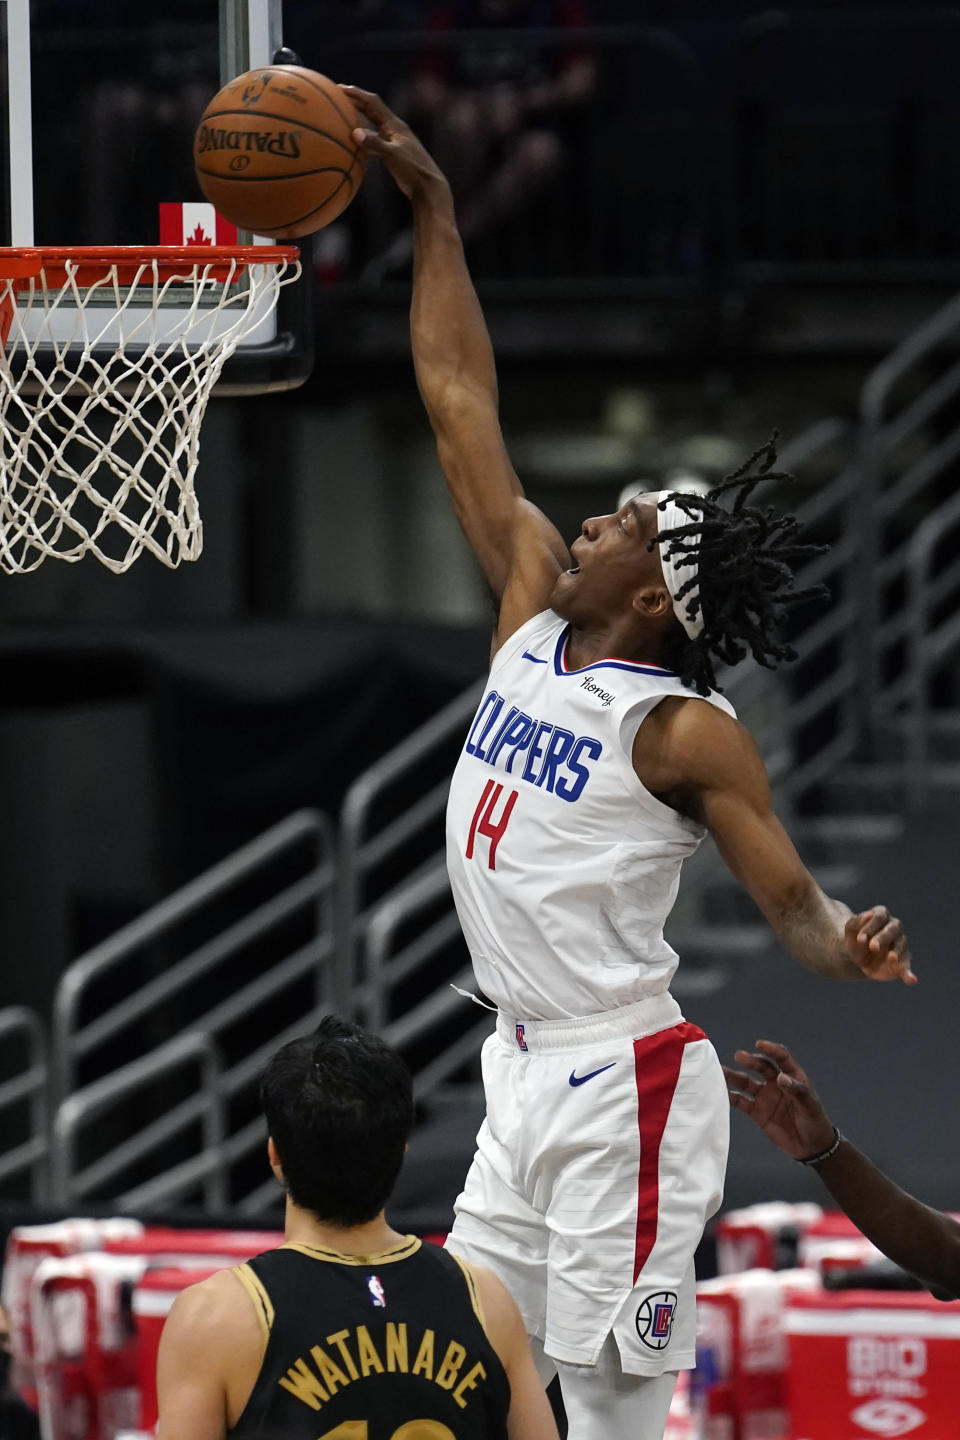 Los Angeles Clippers guard Terance Mann (14) slam dunks the ball over Toronto Raptors forward Yuta Watanabe, of Japan, (18) during the second half of an NBA basketball game Tuesday, May 11, 2021, in Tampa, Fla. (AP Photo/Chris O'Meara)